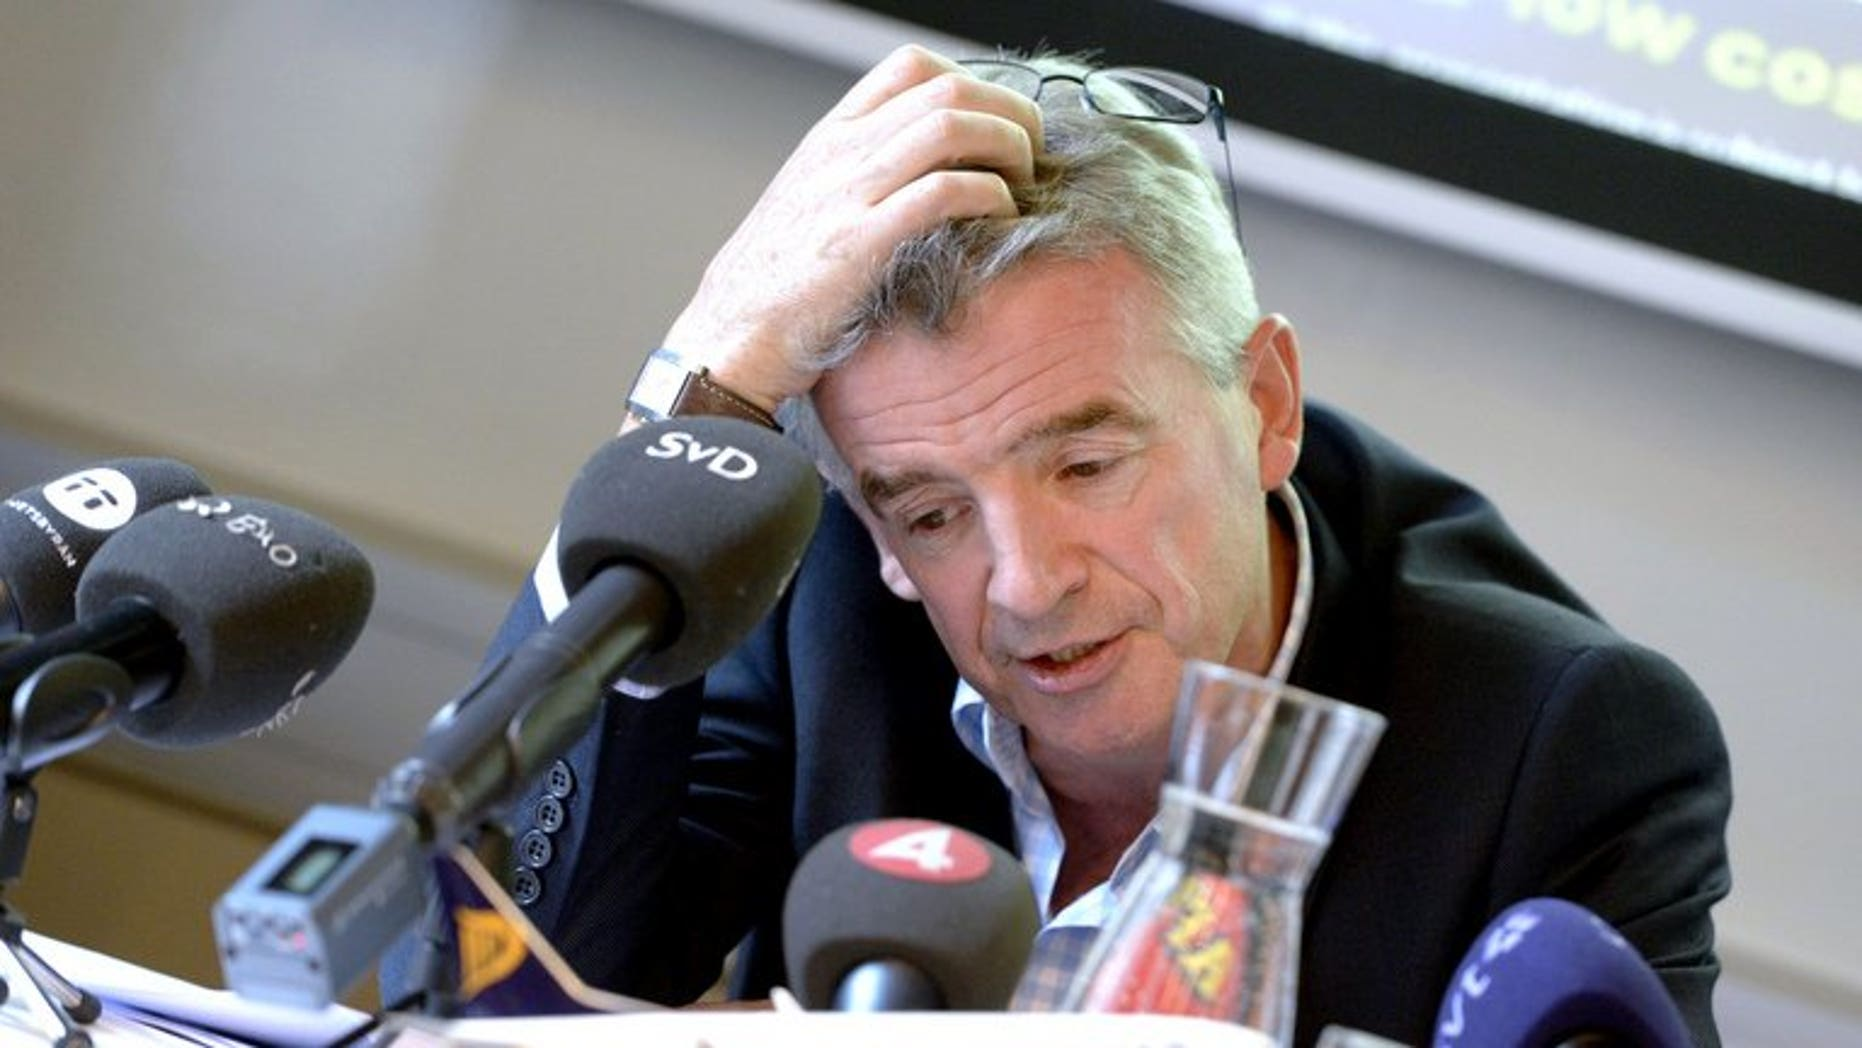 Ryanair chief executive Michael O'Leary is pictured in Stockholm, Sweden on August 29, 2013. Ryanair has apologised to a distraught father who was charged 188 euro (??158) by the budget airline to change his flight from Ireland to England when his wife and three children were killed in a fire.